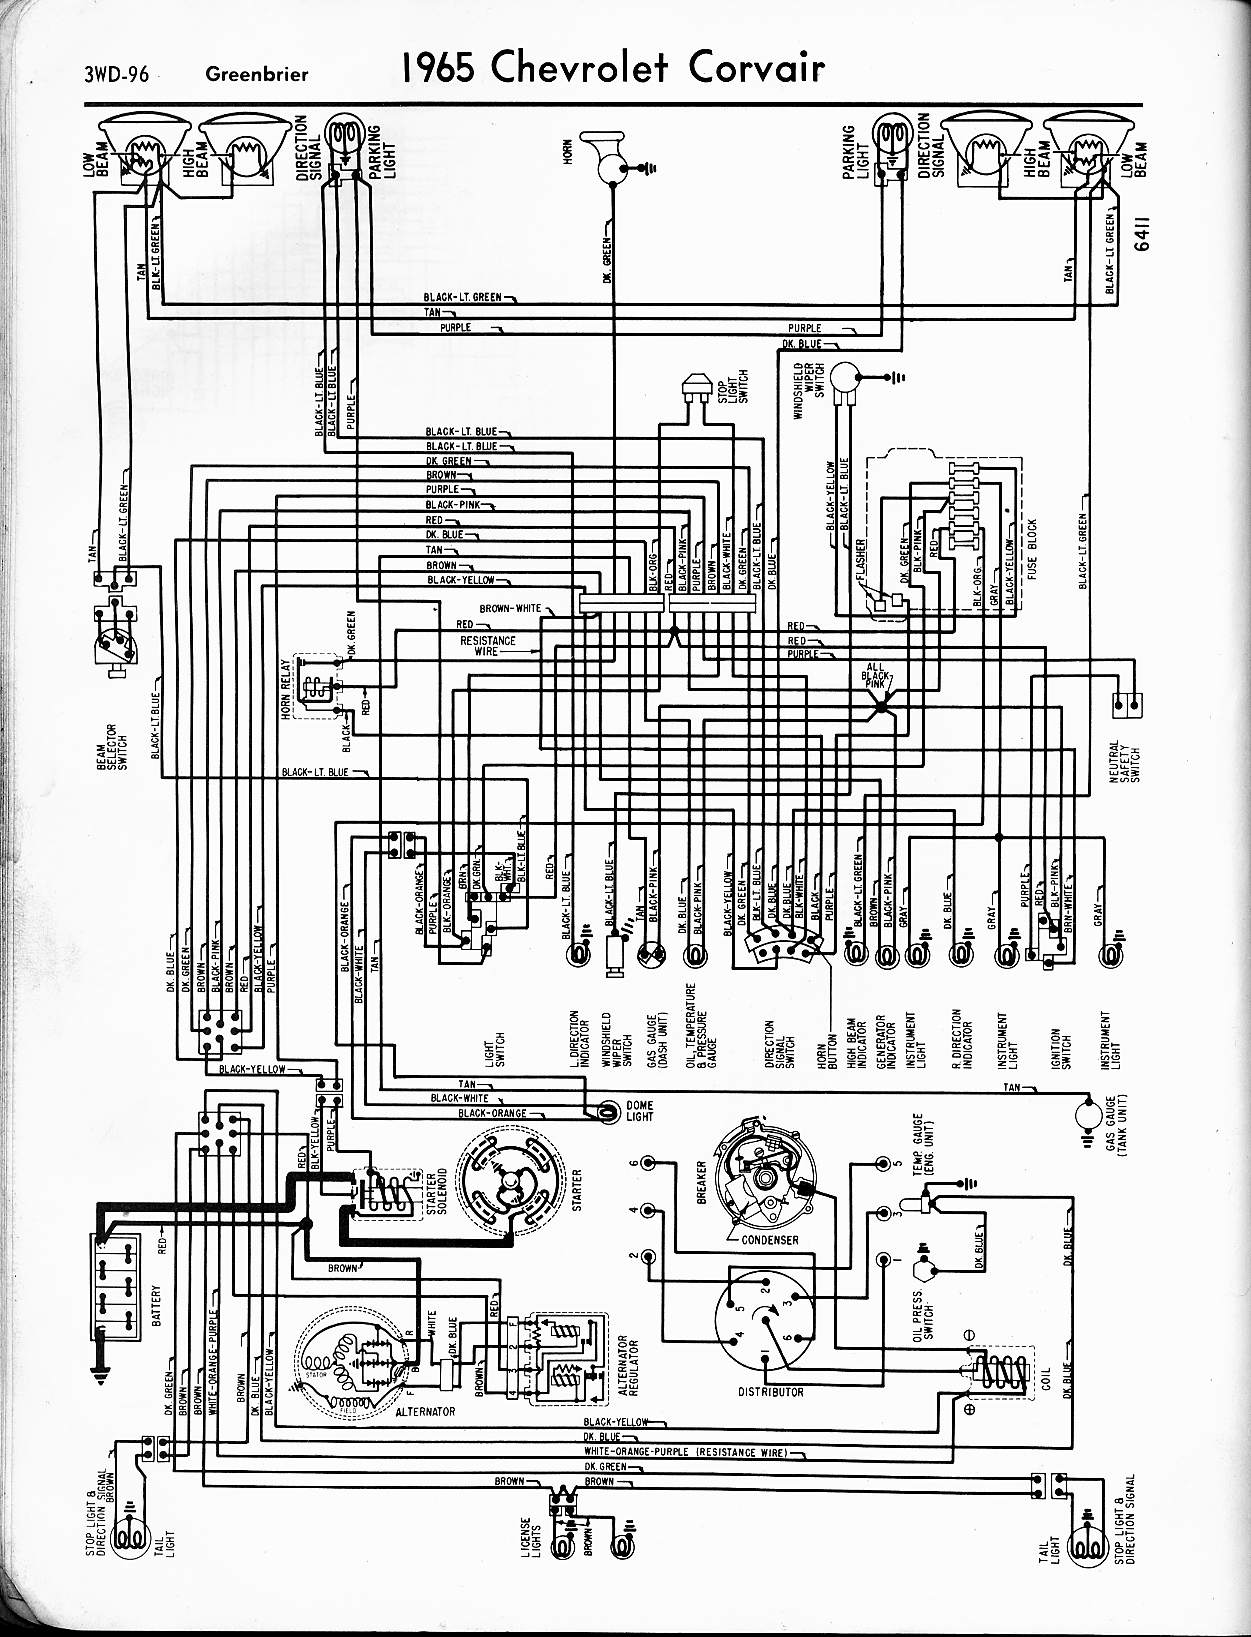 1964 chevy nova wiring diagram ge dryer 65 library